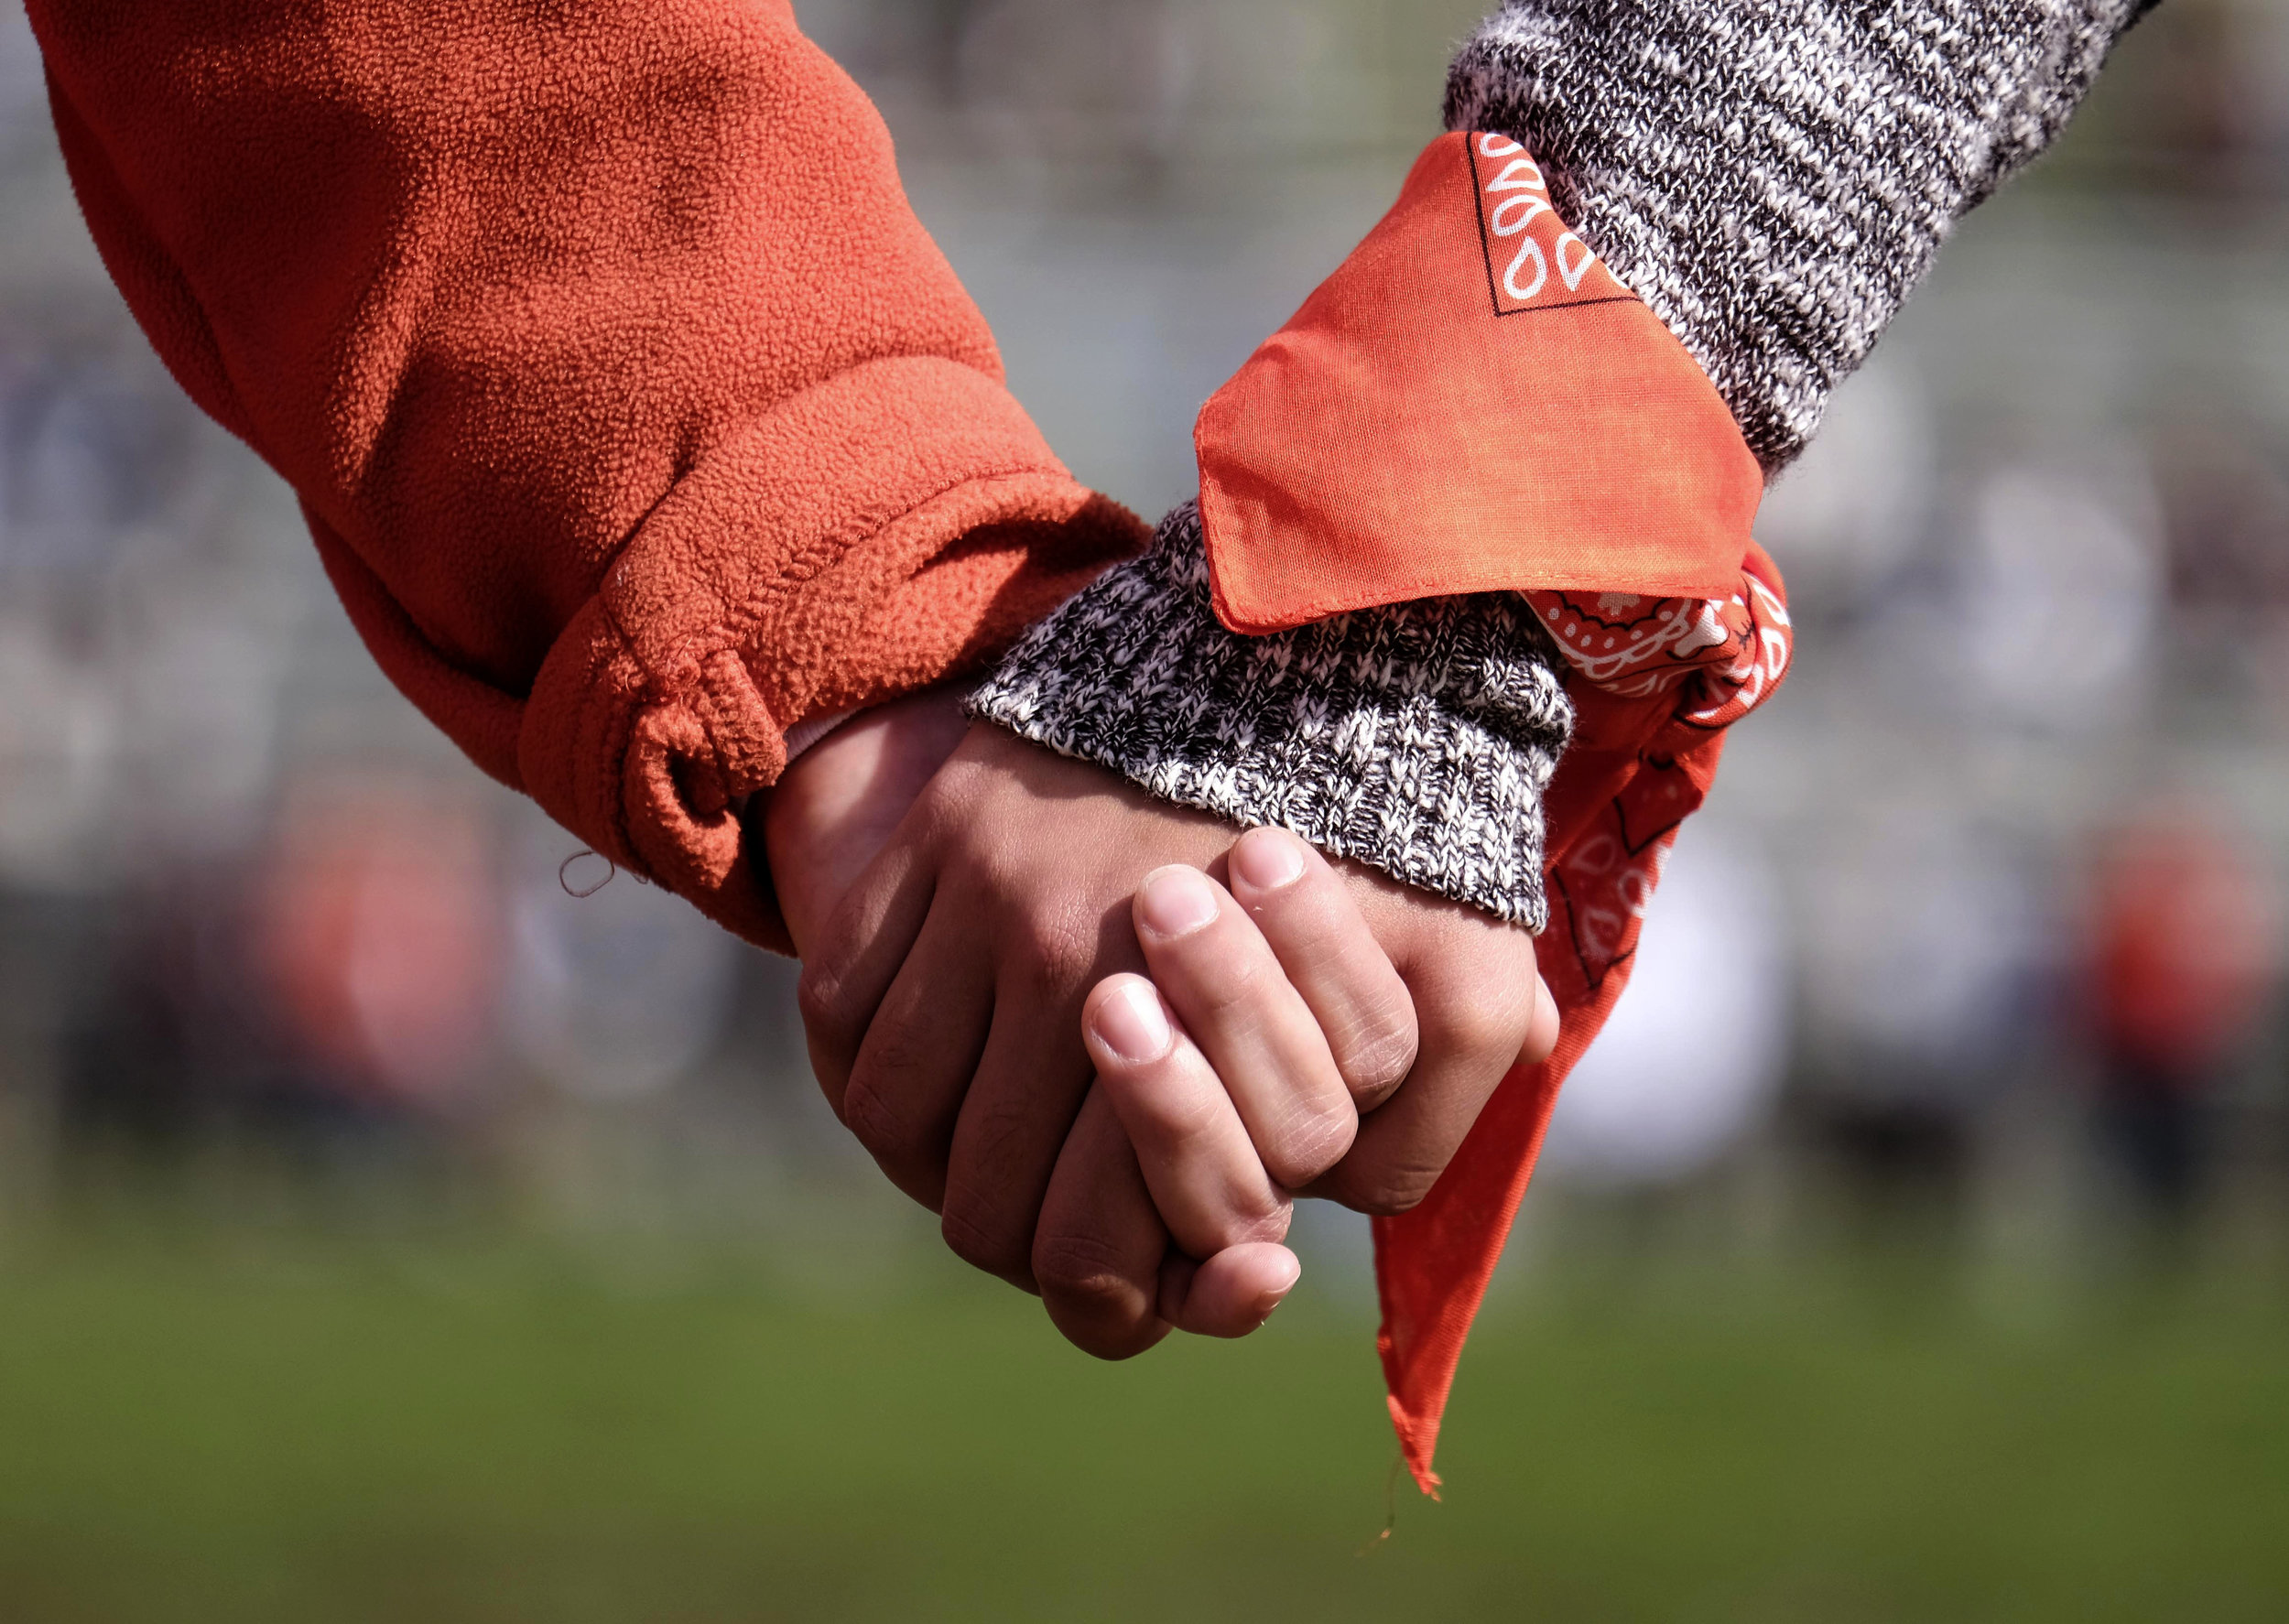 Students from Francis Polytechnic High School link arms on their football field for ``#NeverAgain,'' an assembly which spotlights the meaning of school safety for students as part of a nationwide protest against gun violence, Wednesday, March 14, 2018, in Los Angeles.